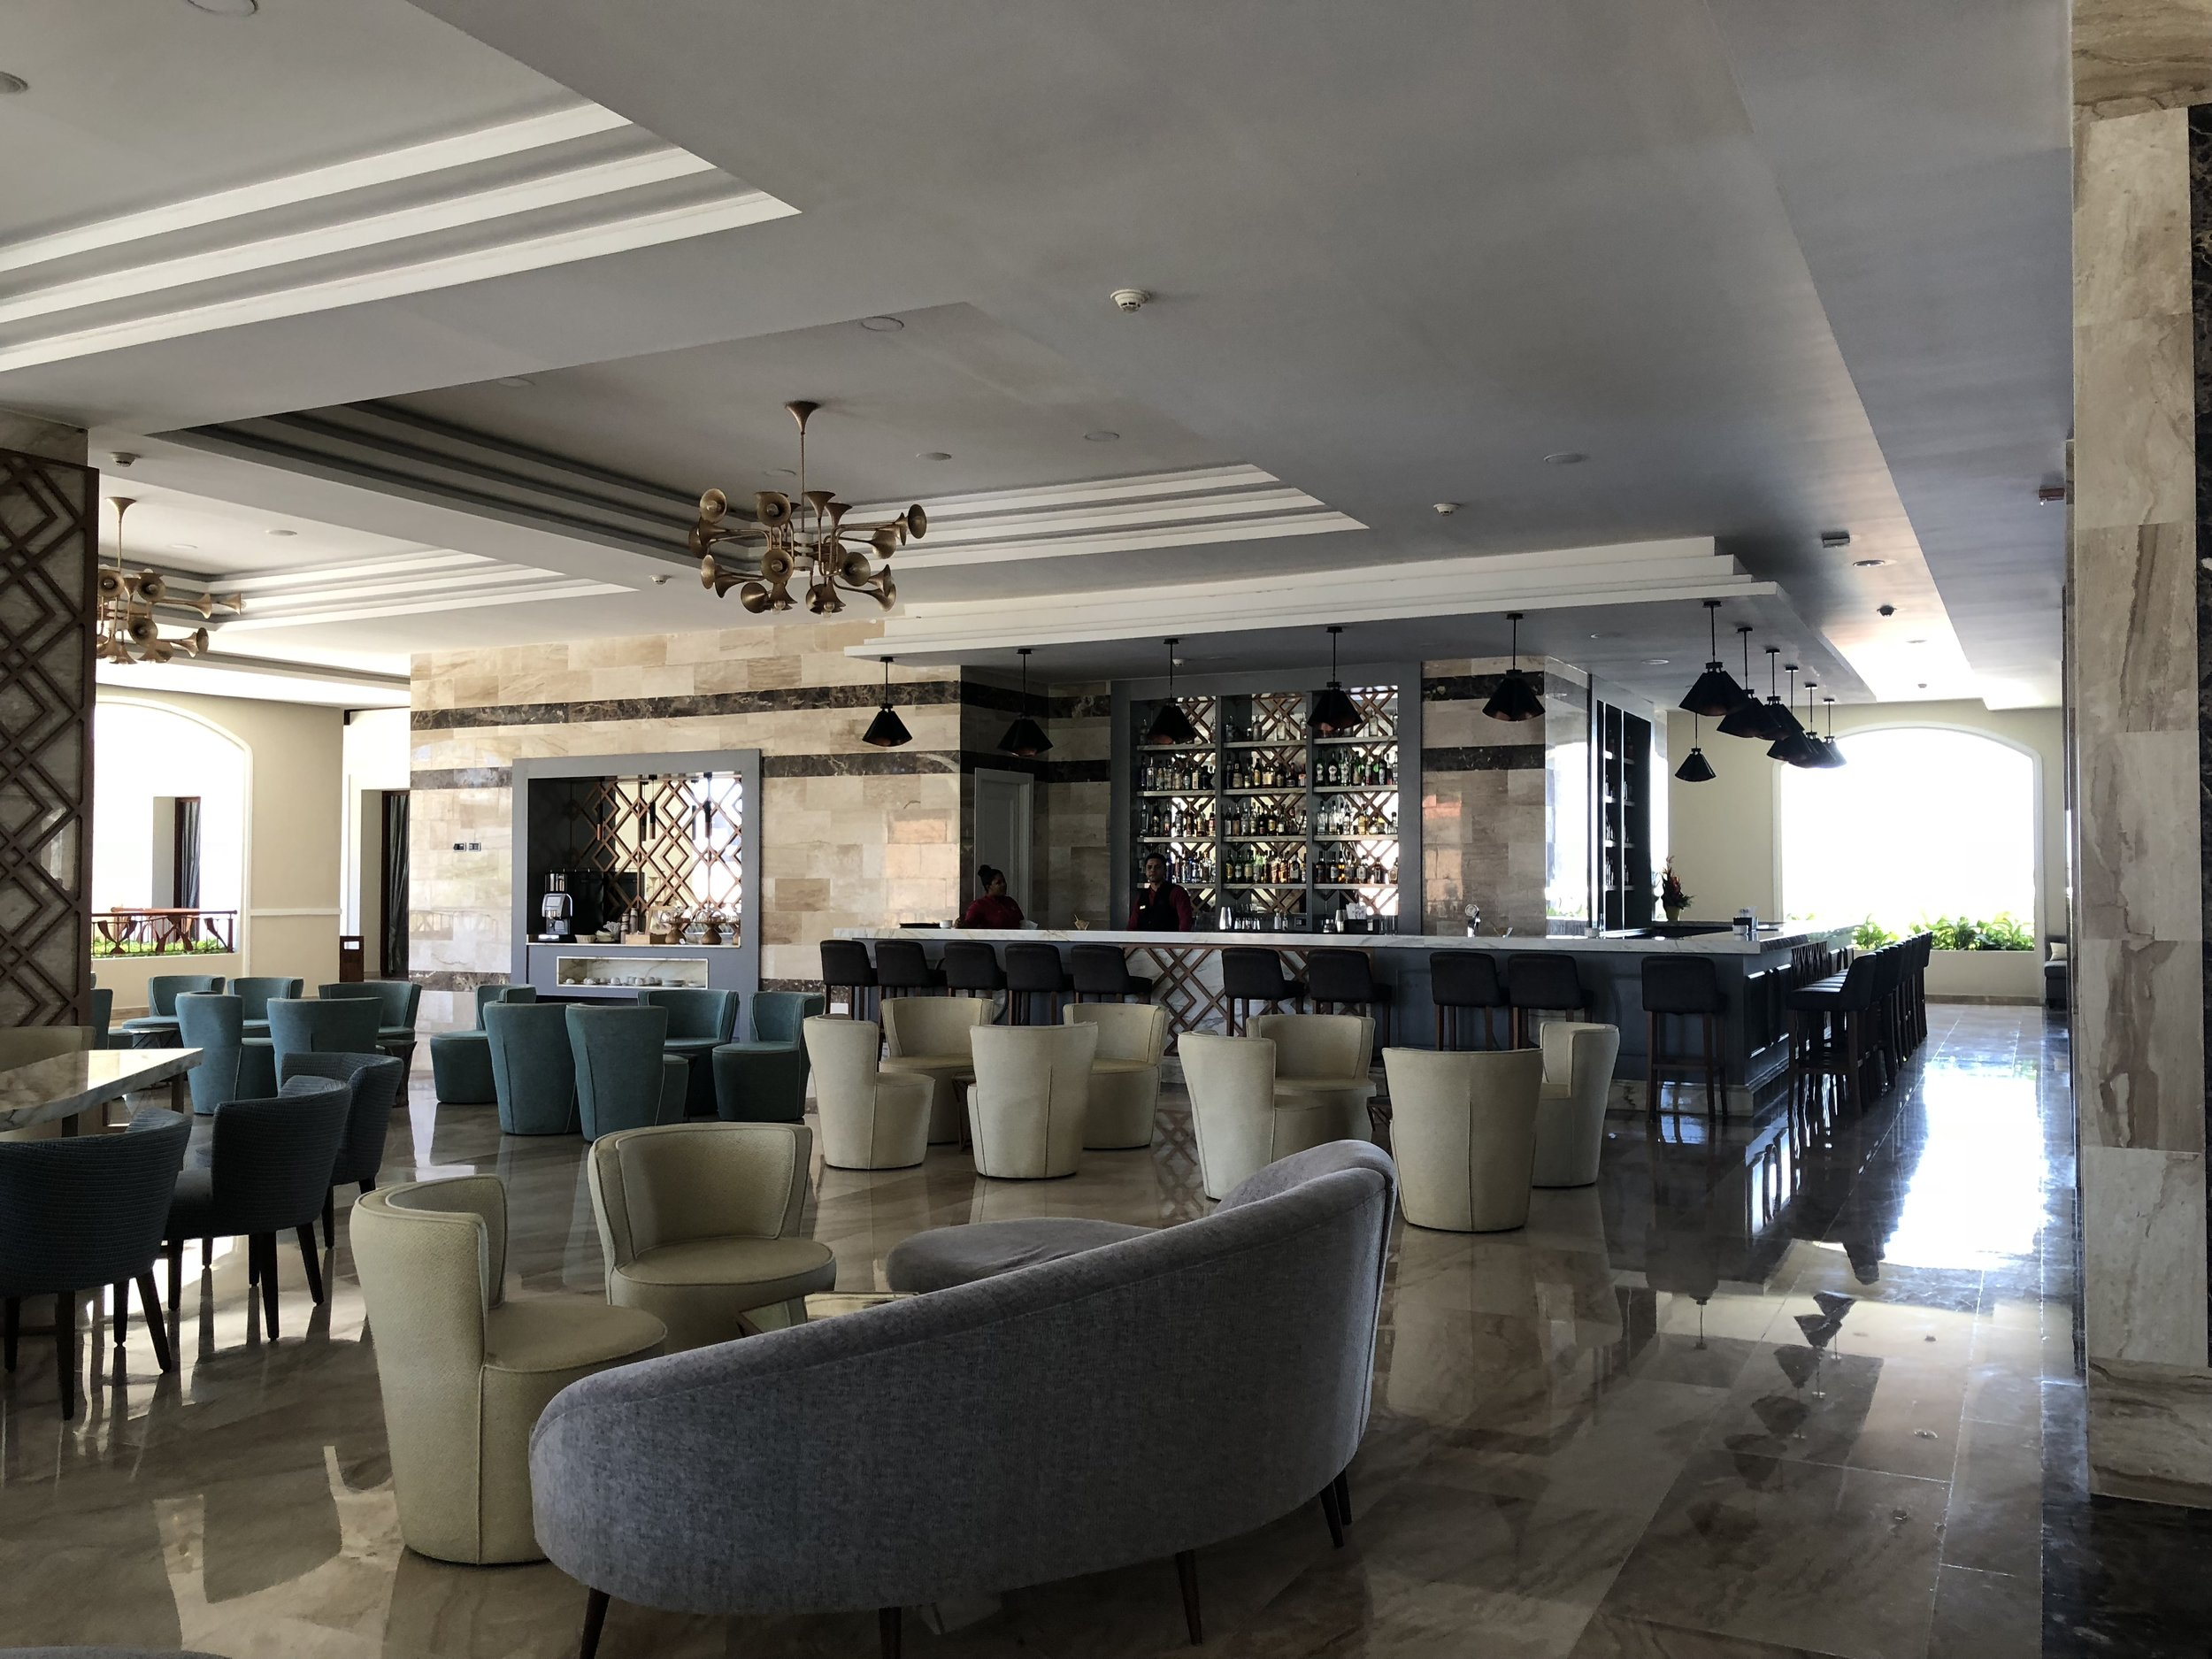 Right side of the main upper lobby sitting area.